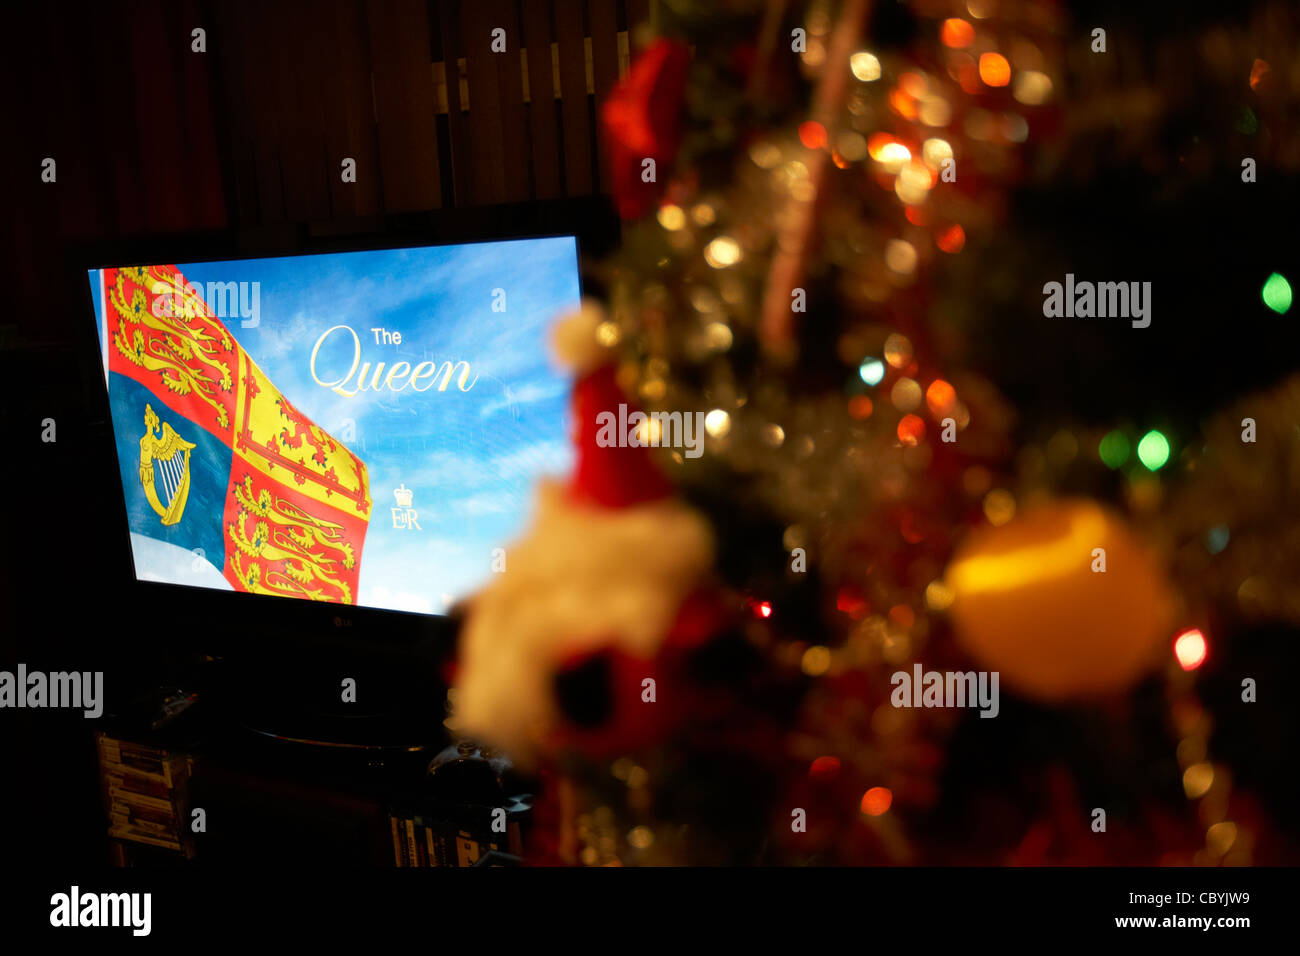 the queens speech broadcast on television at christmas in the uk - Stock Image